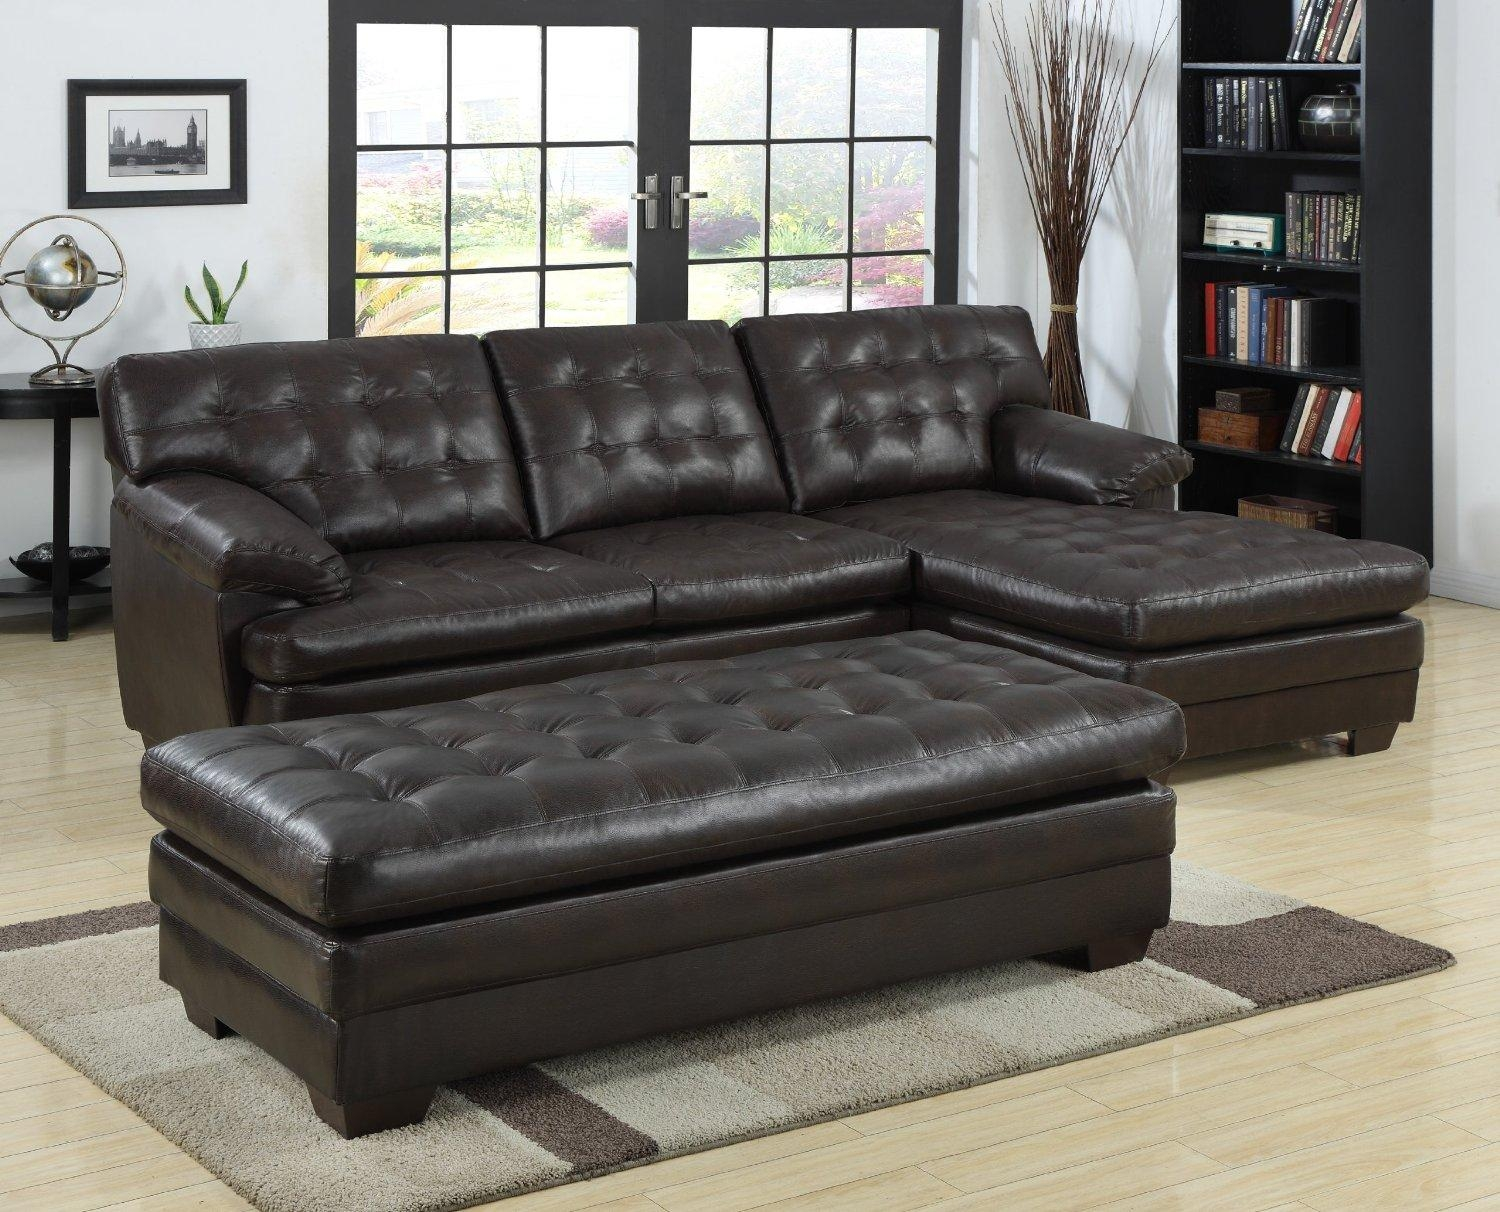 Black Tufted Leather Sectional Sofa With Chaise And Bench Seat Throughout Tufted Sectional Sofa Chaise (Image 1 of 20)